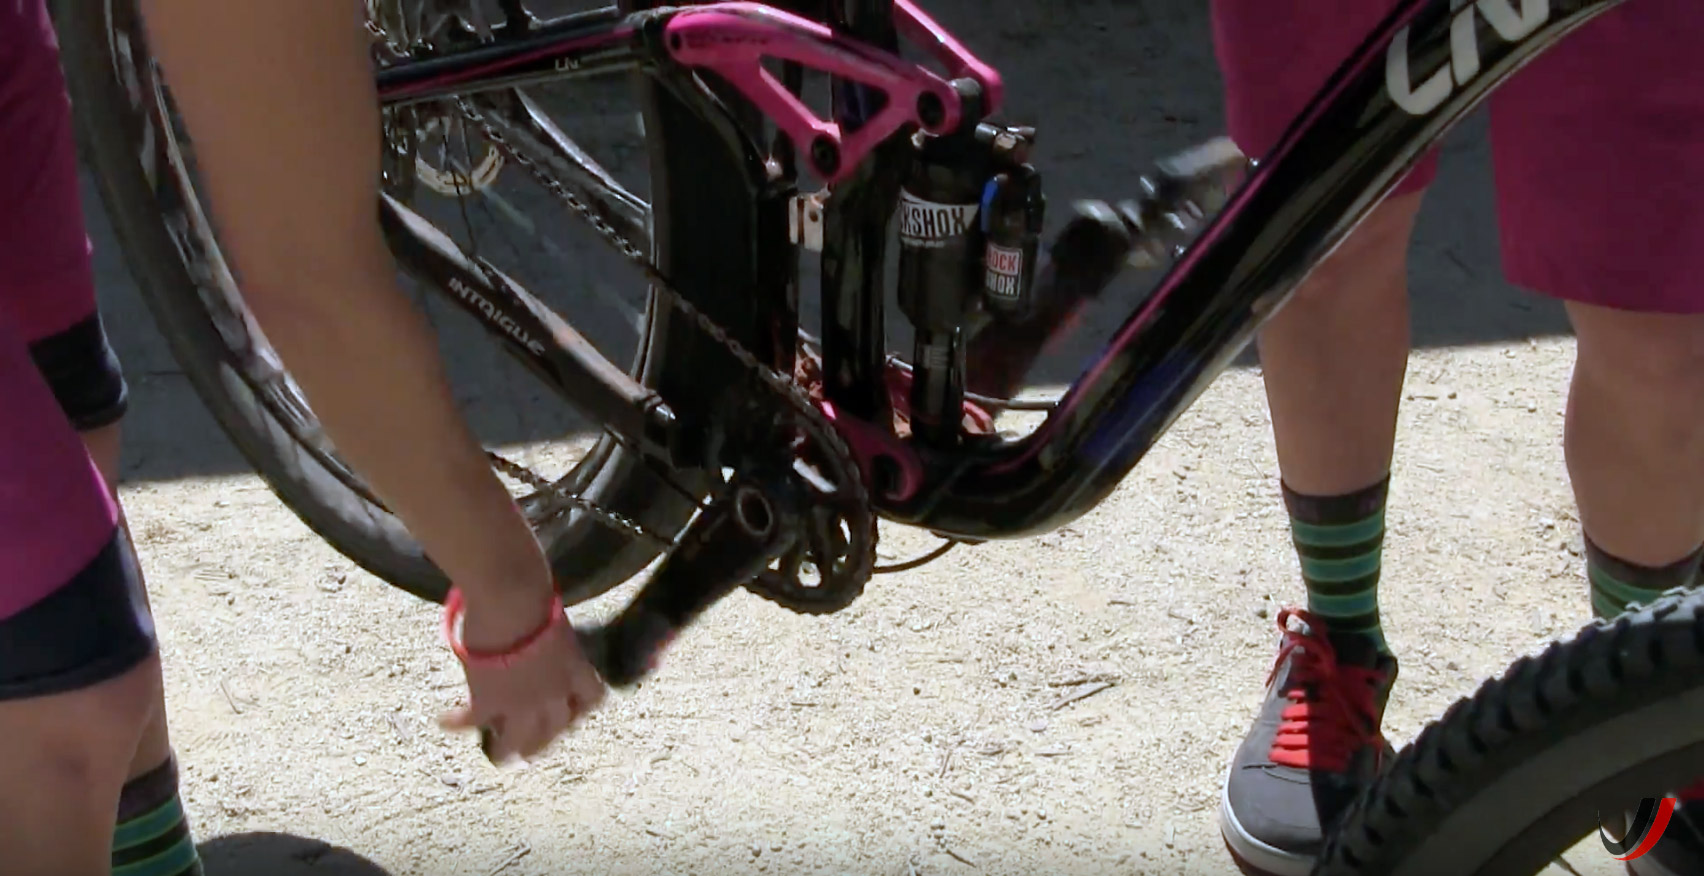 Shift your chain to an easy gear.